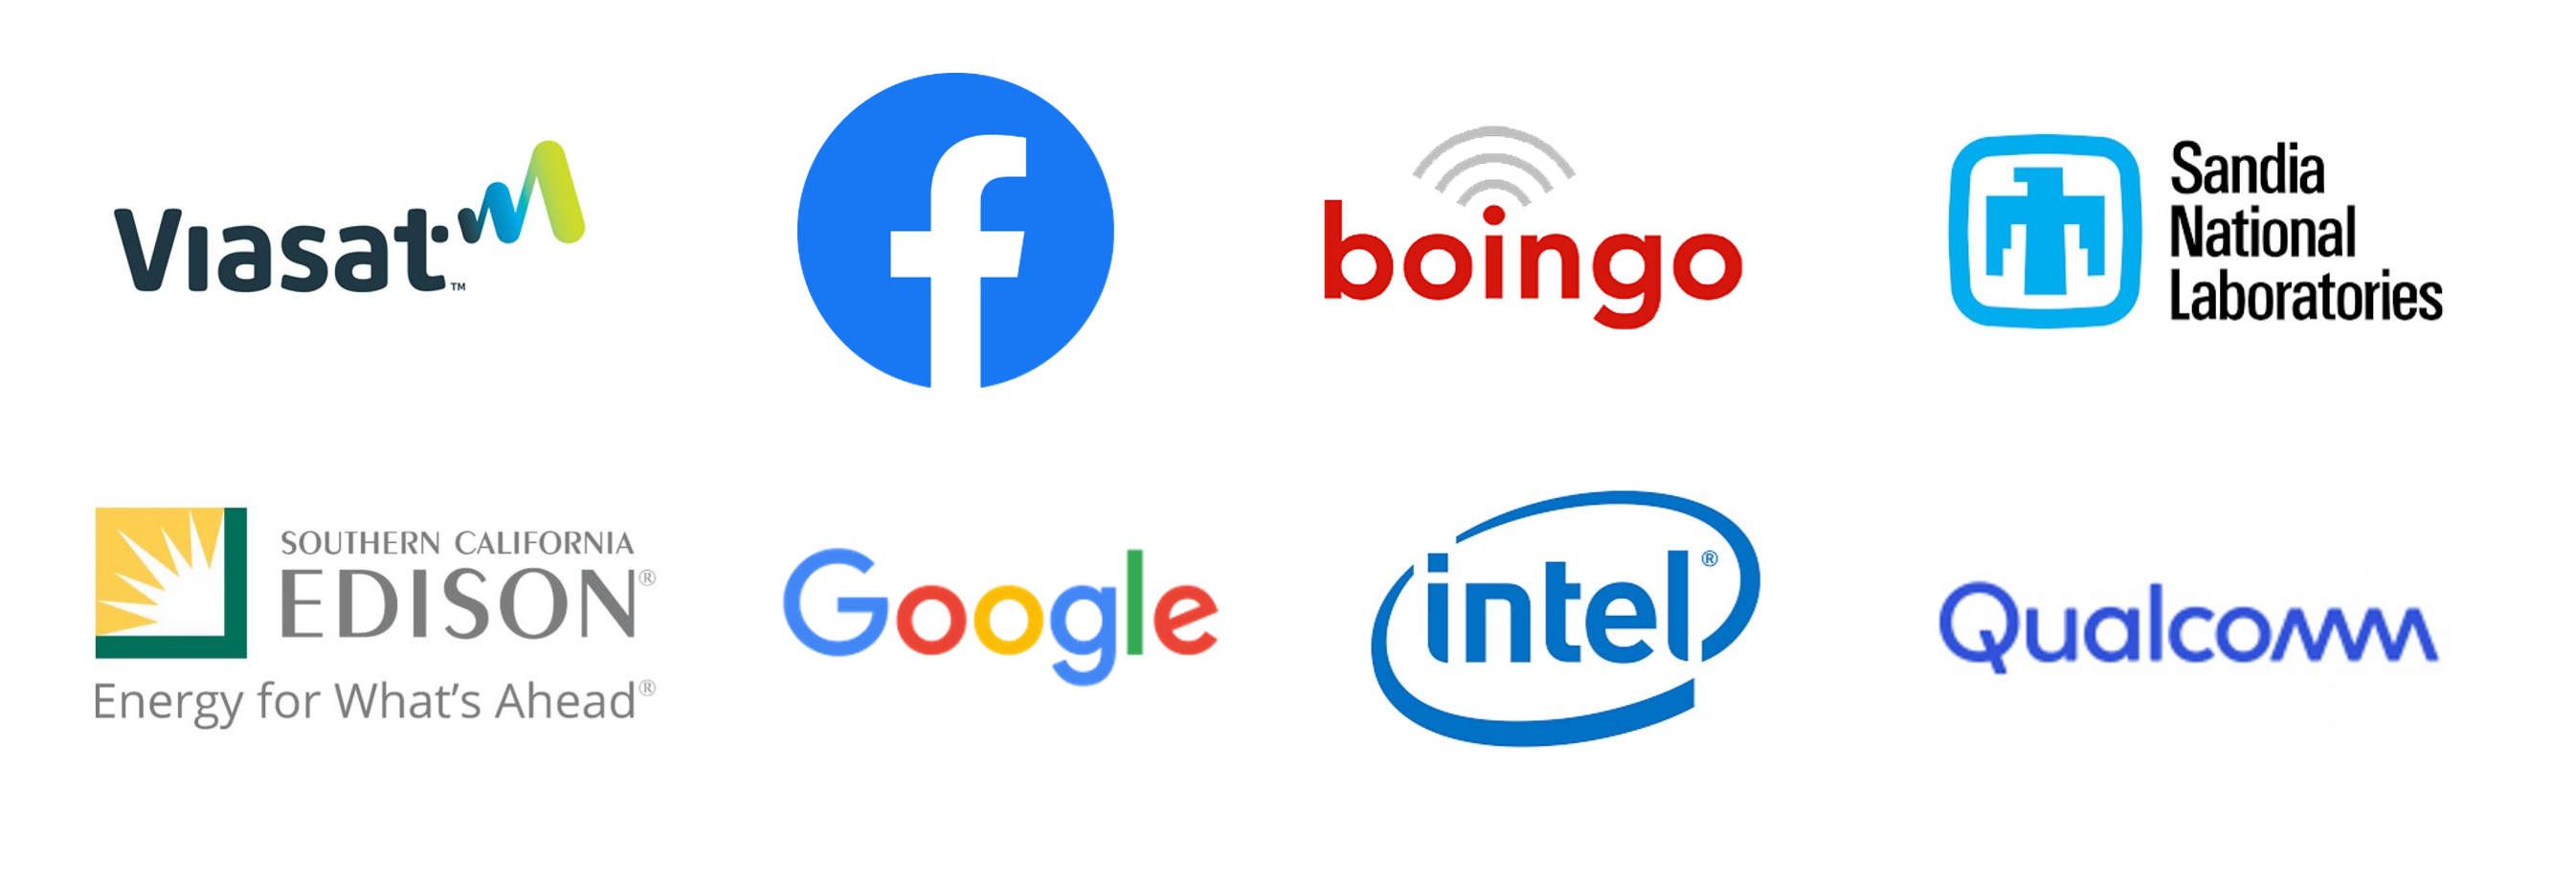 Viasat, Facebook, Boingo, Sandia National Labs, SoCal Edison, Intel, Qualcomm